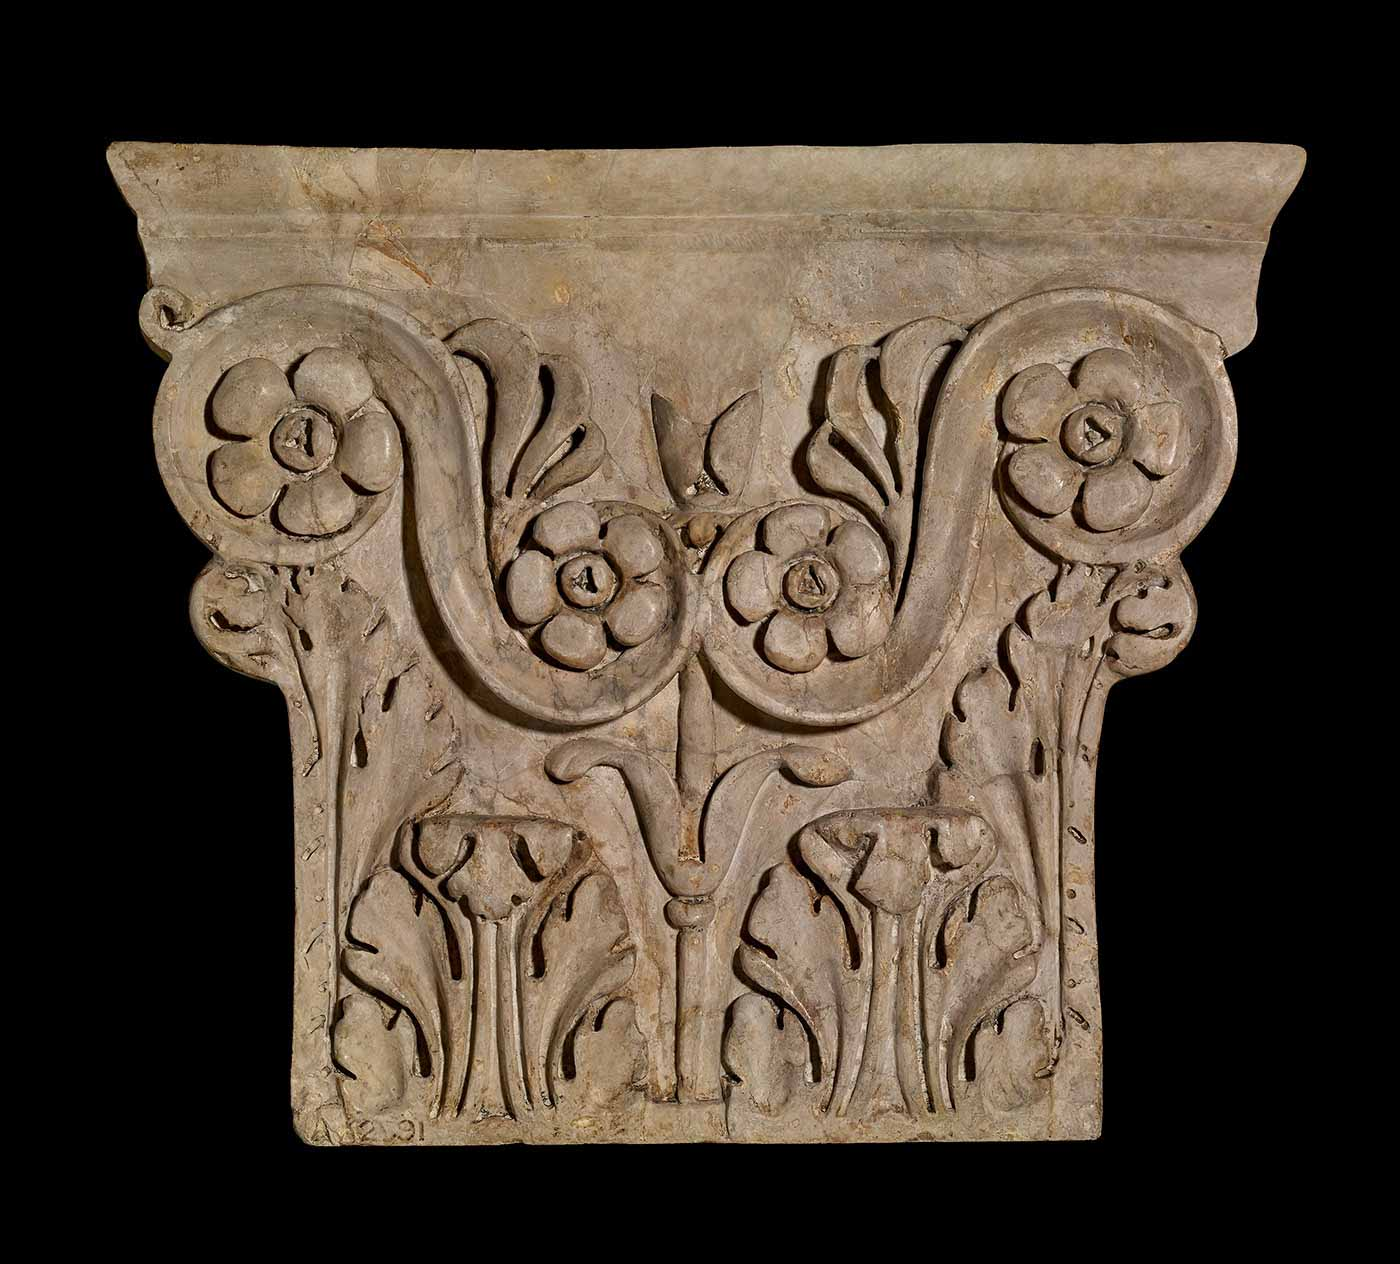 A pilaster capital featuring a floral relief engraving.